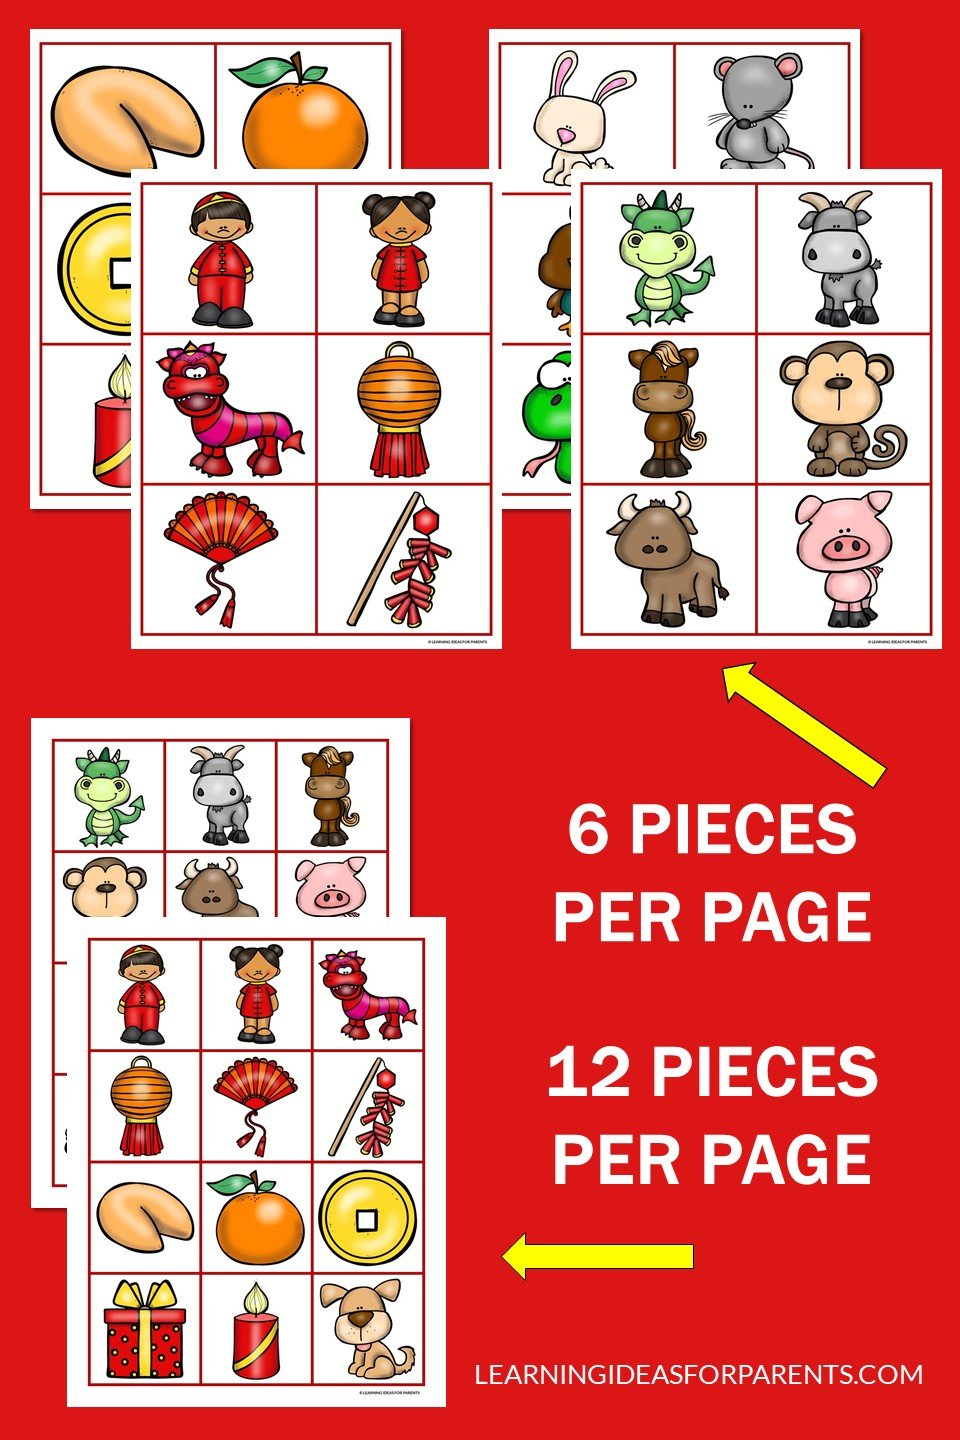 Free printable Lunar New Year memory game for kids